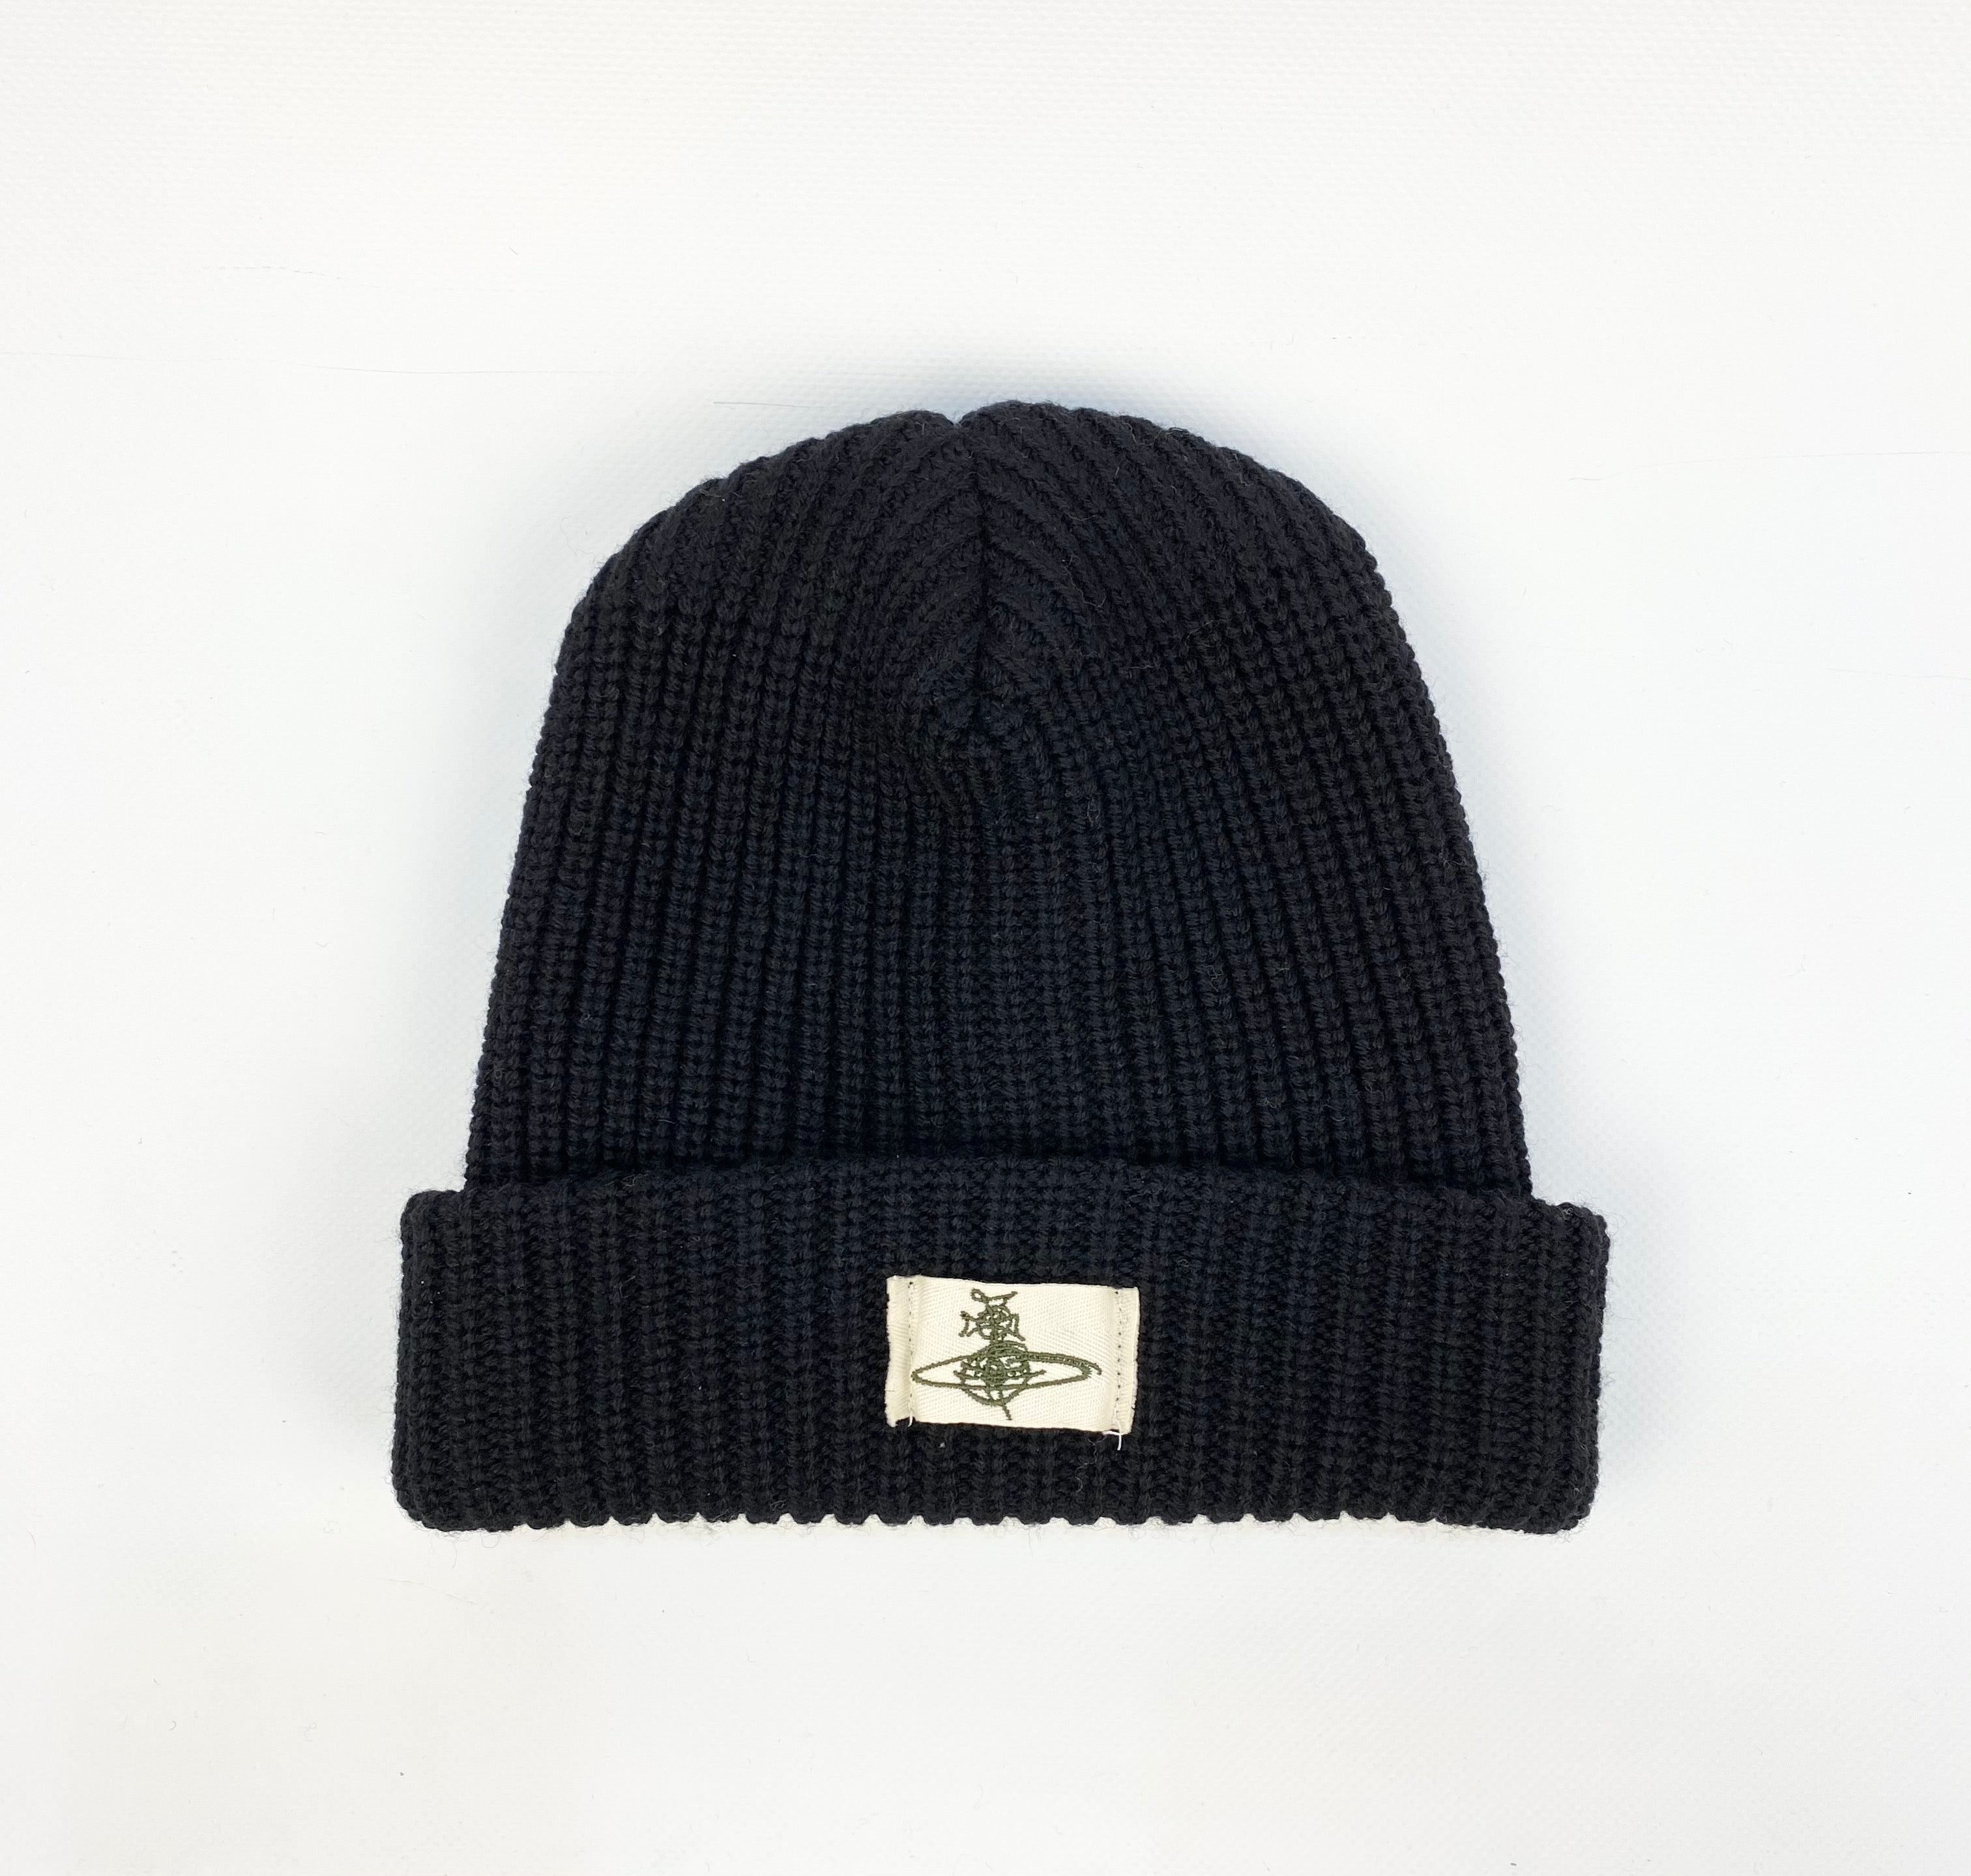 Vivienne Westwood Chunky Knitted Beanie Hat Black